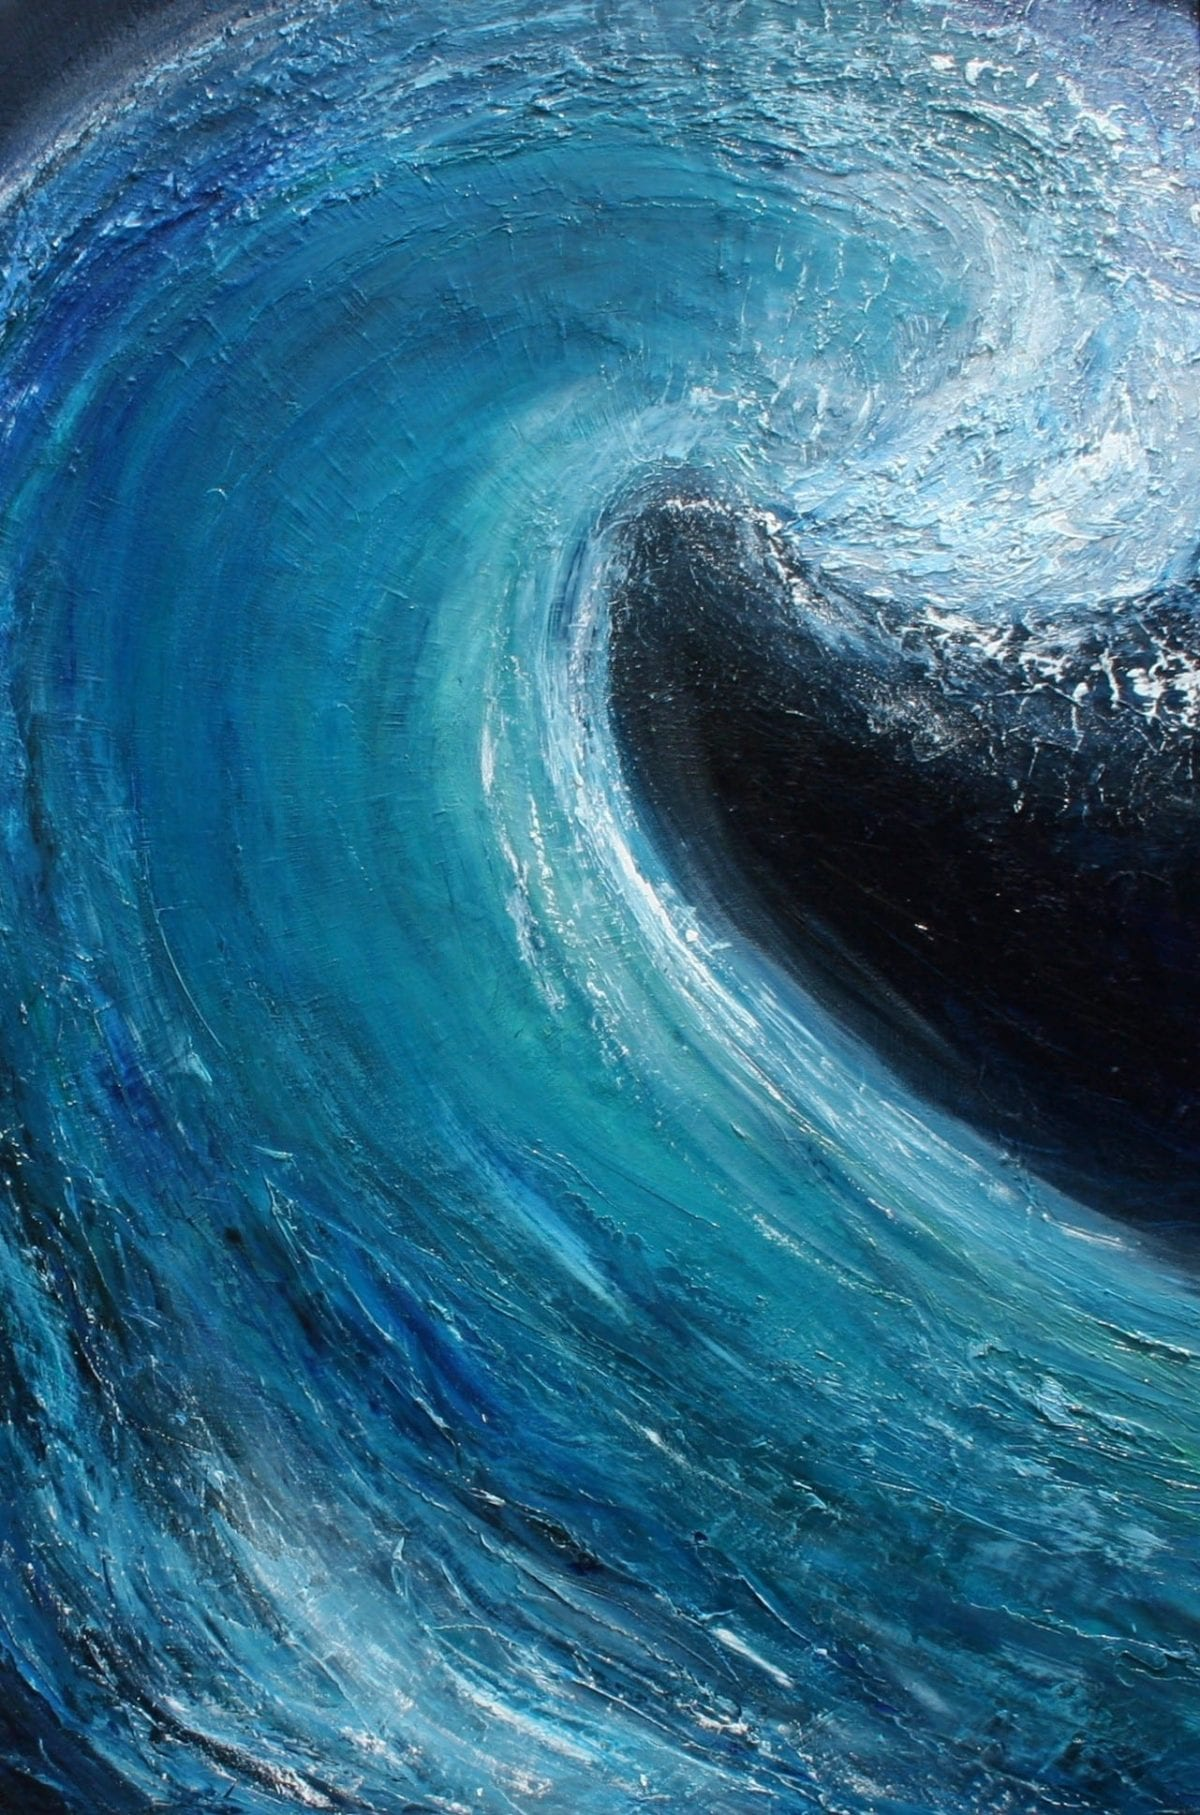 """Into the blue II"" abstract turquoise wave oil painting on canvas. Width 61 cm Height 91cm or width 24ins x height 36 inches, canvas depth 4cm or 1.5ins for sale £350. Framed, signed by Devon based artist Catherine Kennedy"